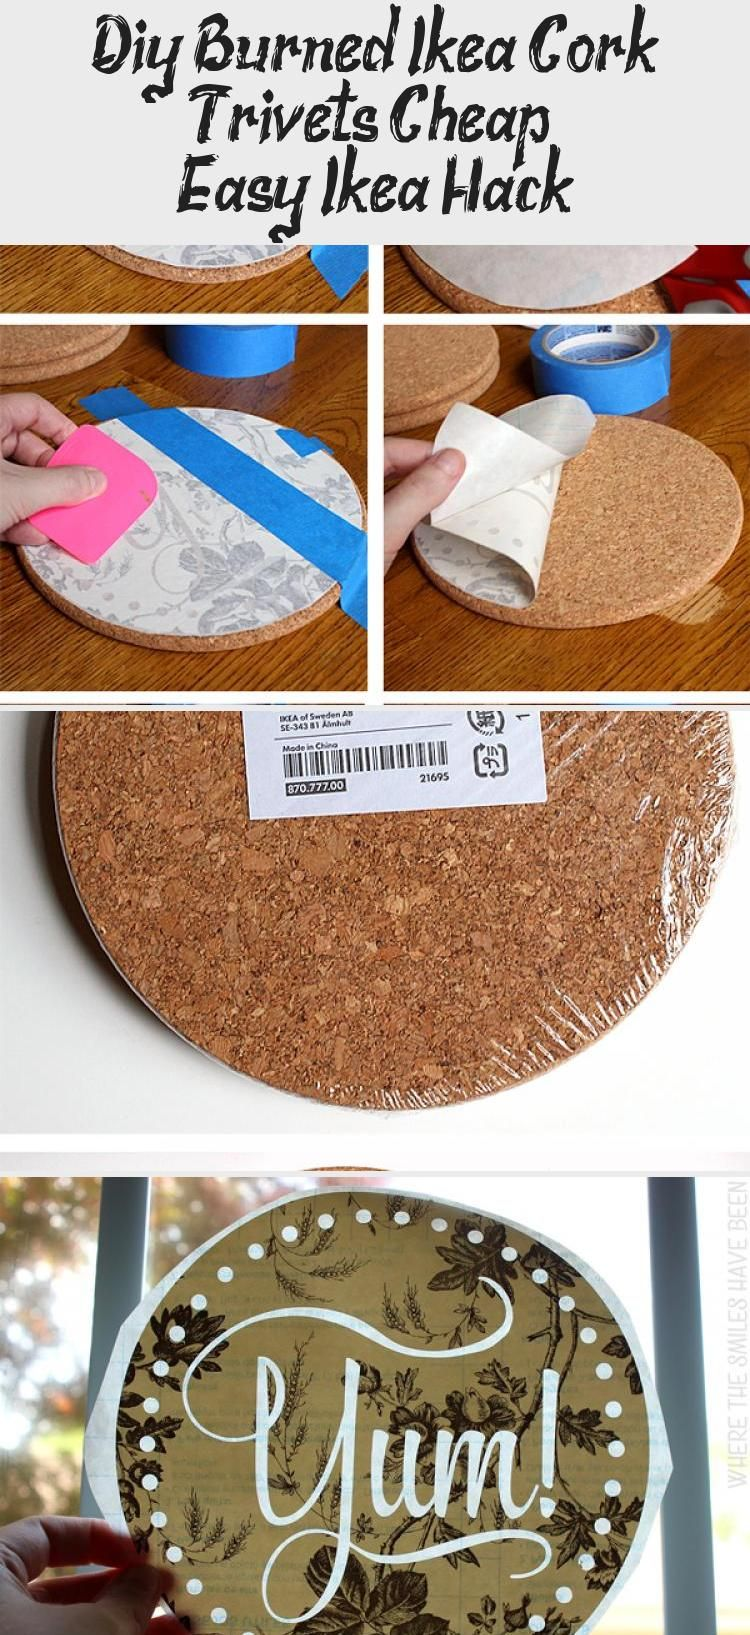 DIY Burned IKEA Cork Trivets: Cheap & Easy IKEA Hack! | Where The Smiles Have Been #IKEA #IKEAhack #cork #corktrivet #corkcoaster #home #corkboard #trivet #coaster #woodburning #pyrography #kitchen #DIYgift #personalizedgift #HomeDecorDIYVideosBedroom #HomeDecorDIYVideosApartment #HomeDecorDIYVideosProjects #HomeDecorDIYVideosCheap #HomeDecorDIYVideosOnABudget